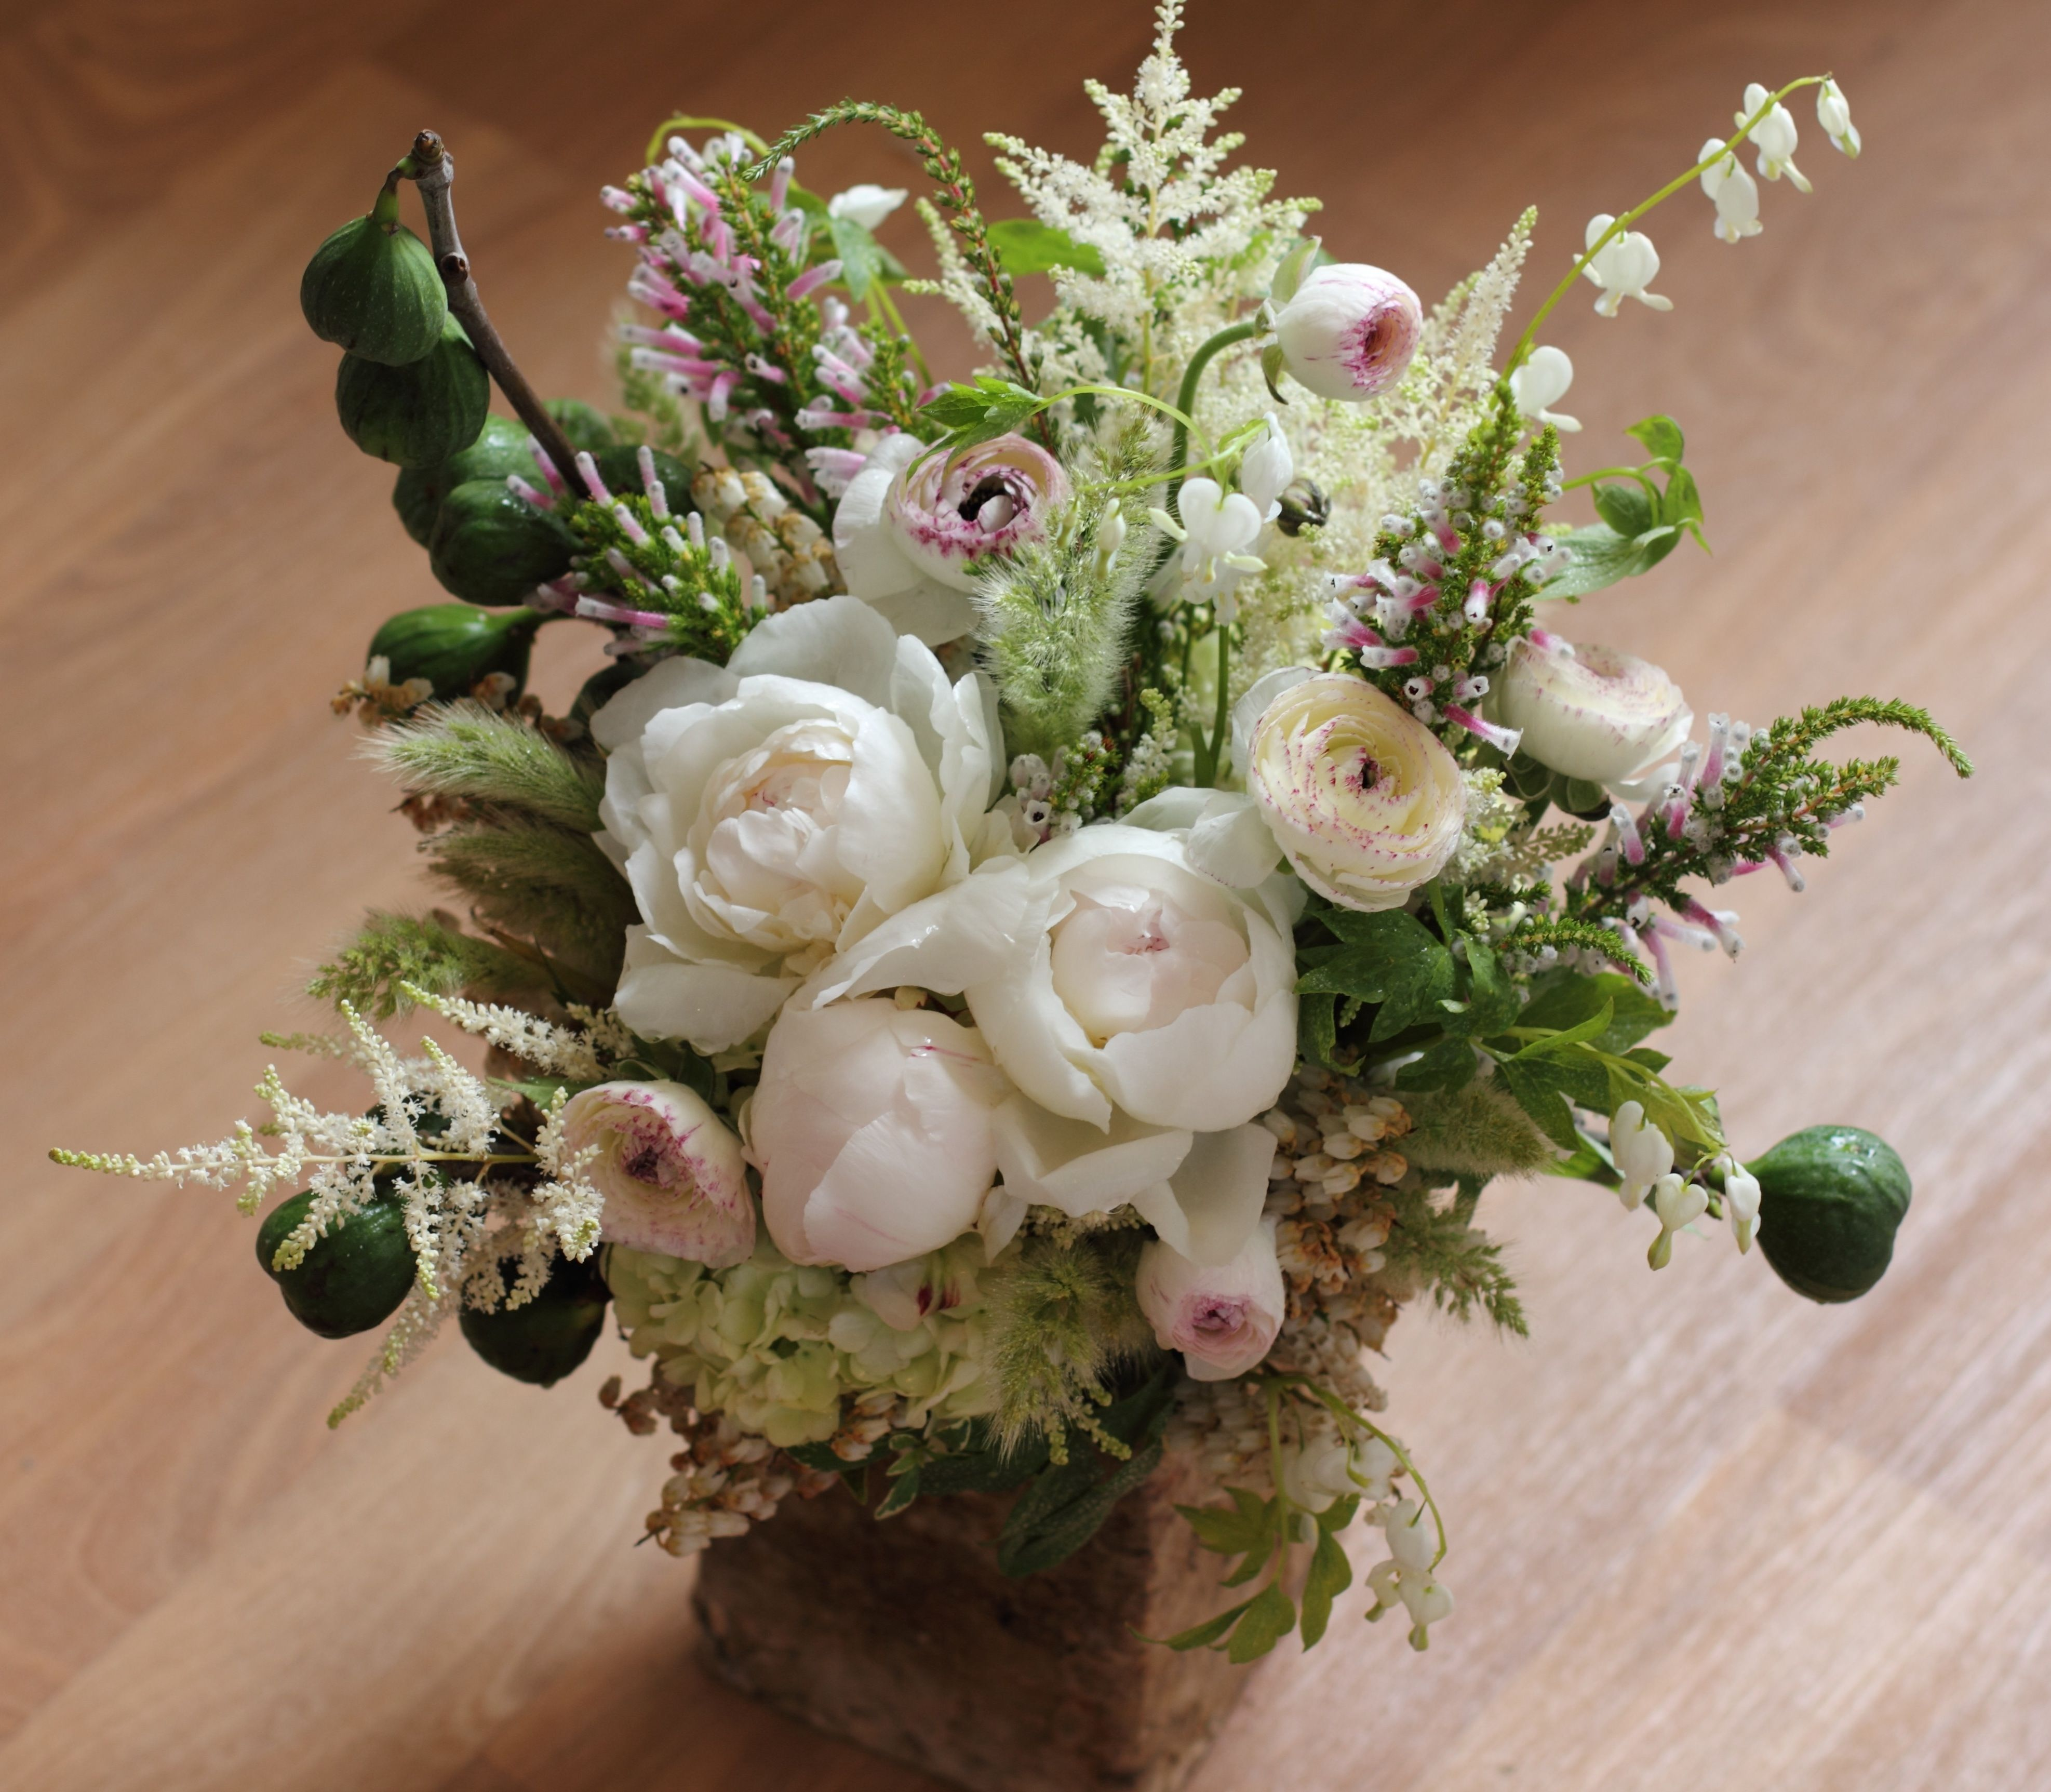 Floral Arrangement by Sachi Rose. Includes fig branches